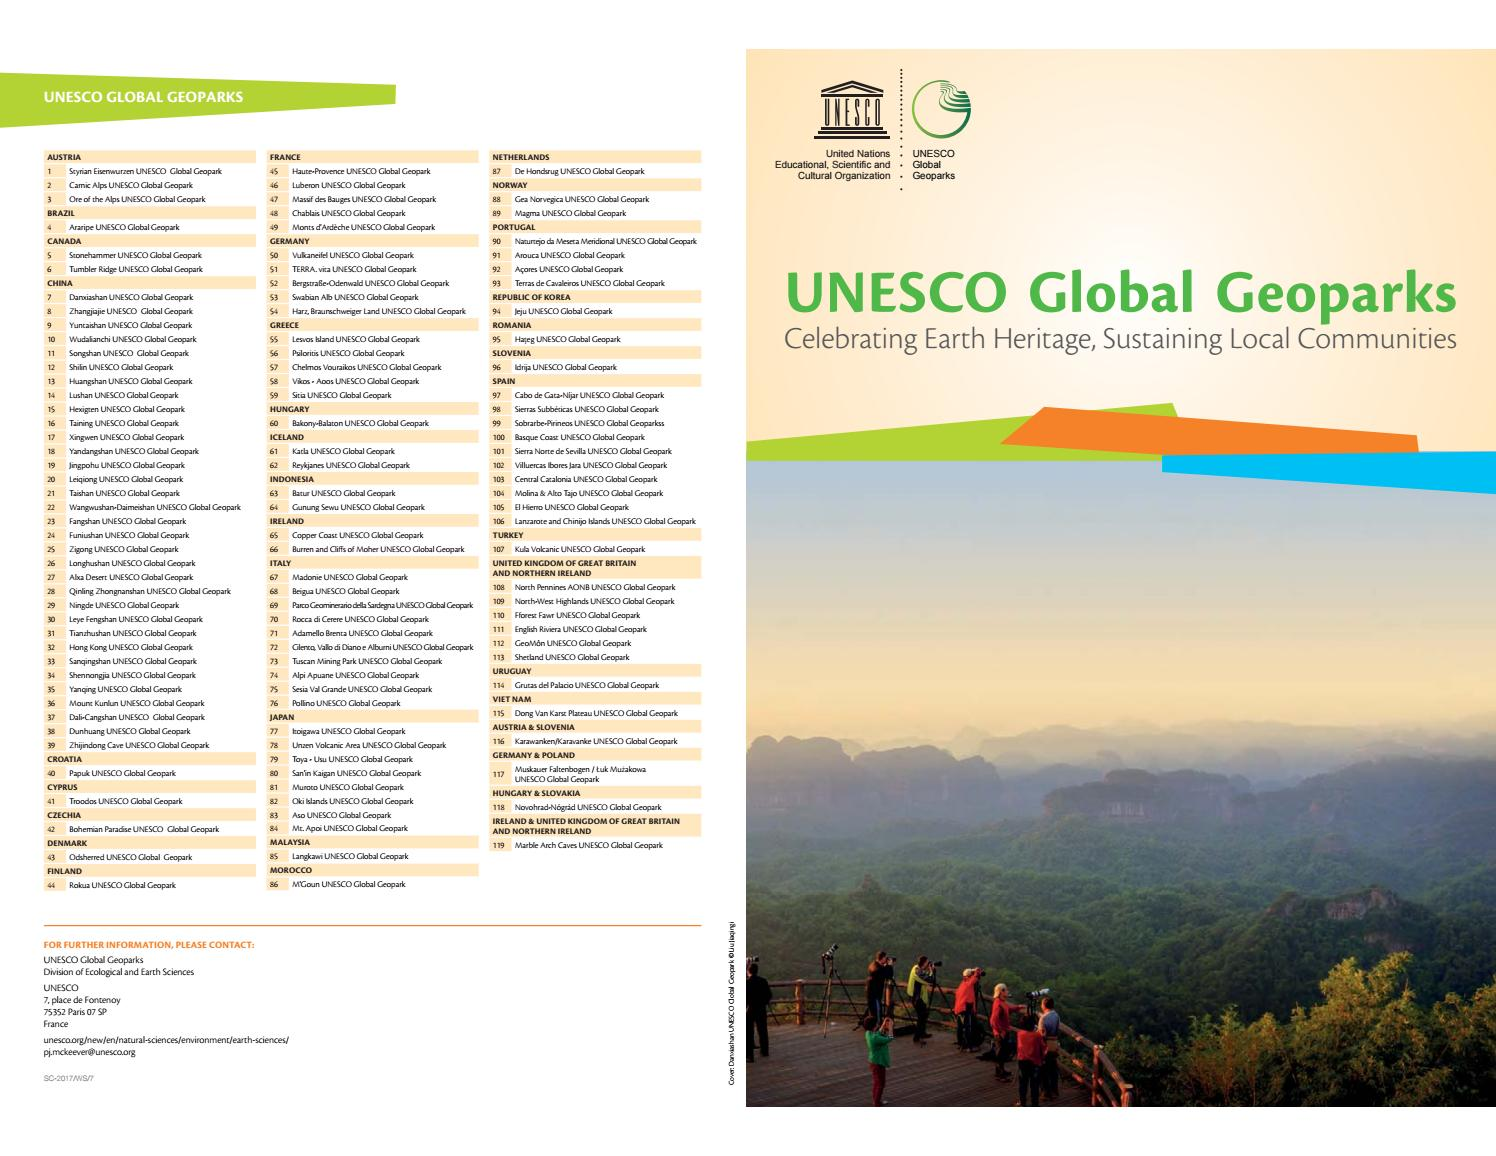 New unesco brochure by magmageopark - issuu